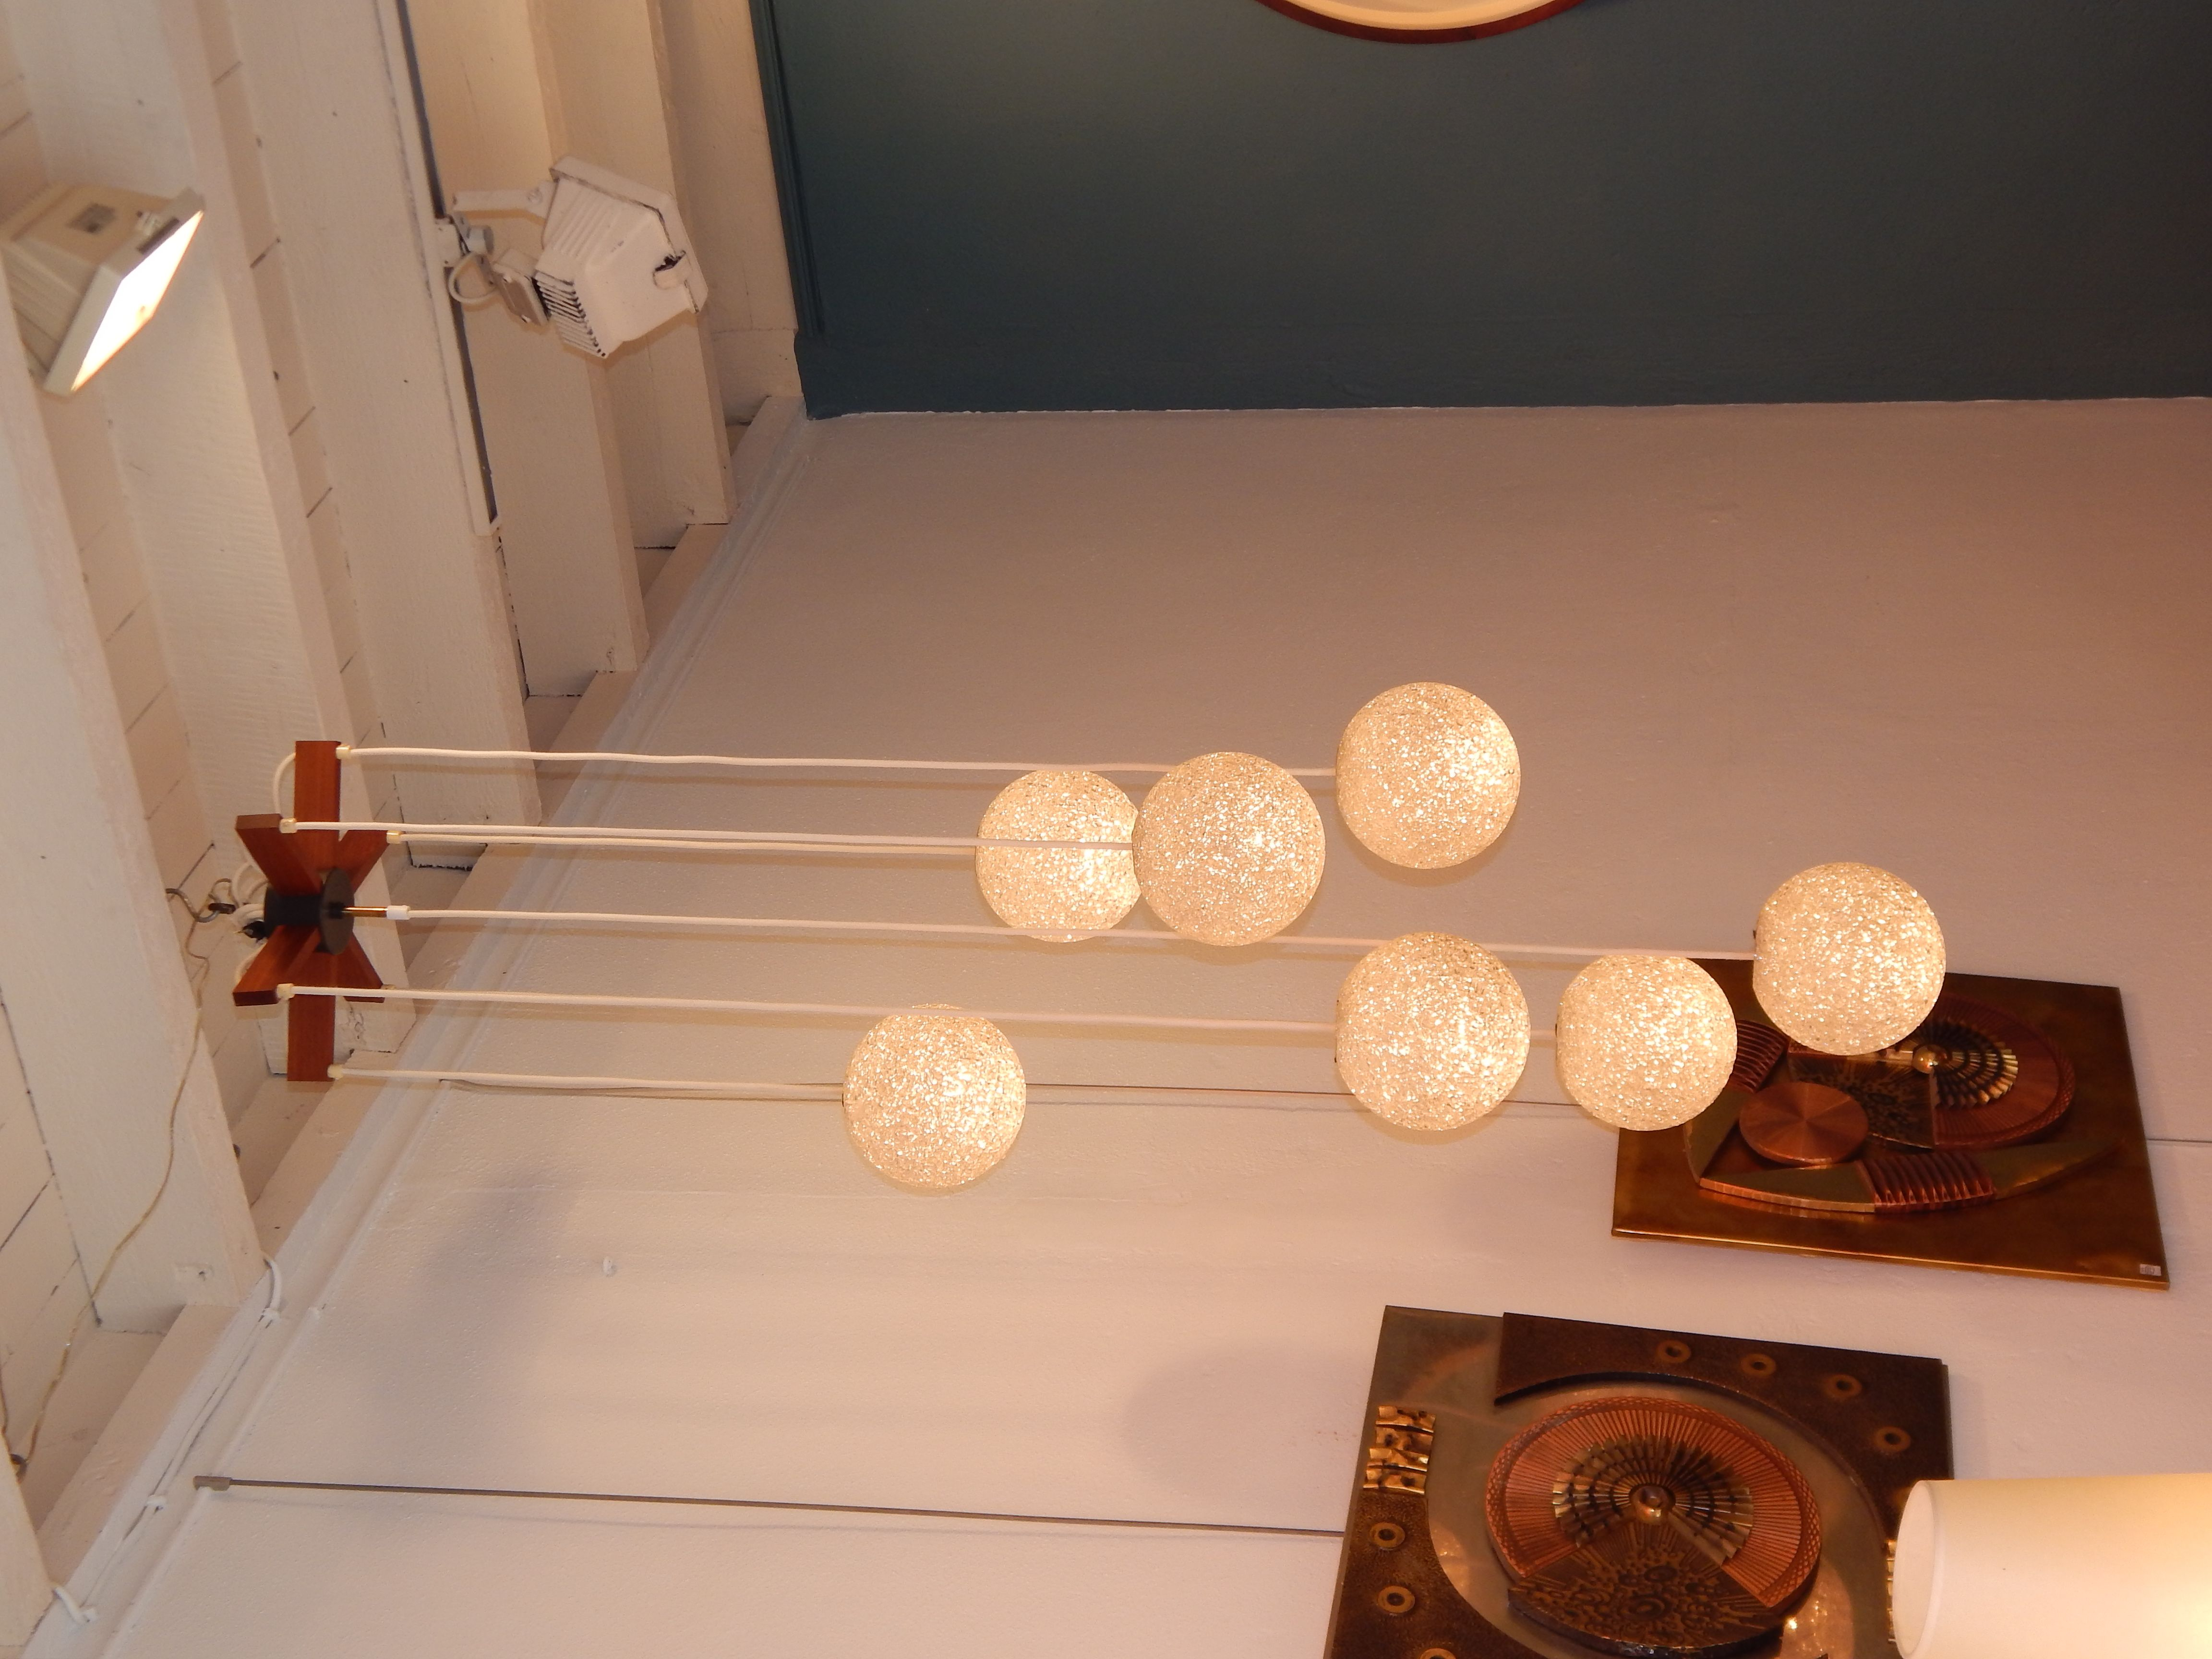 1970s French Hanging light July 27, 2014